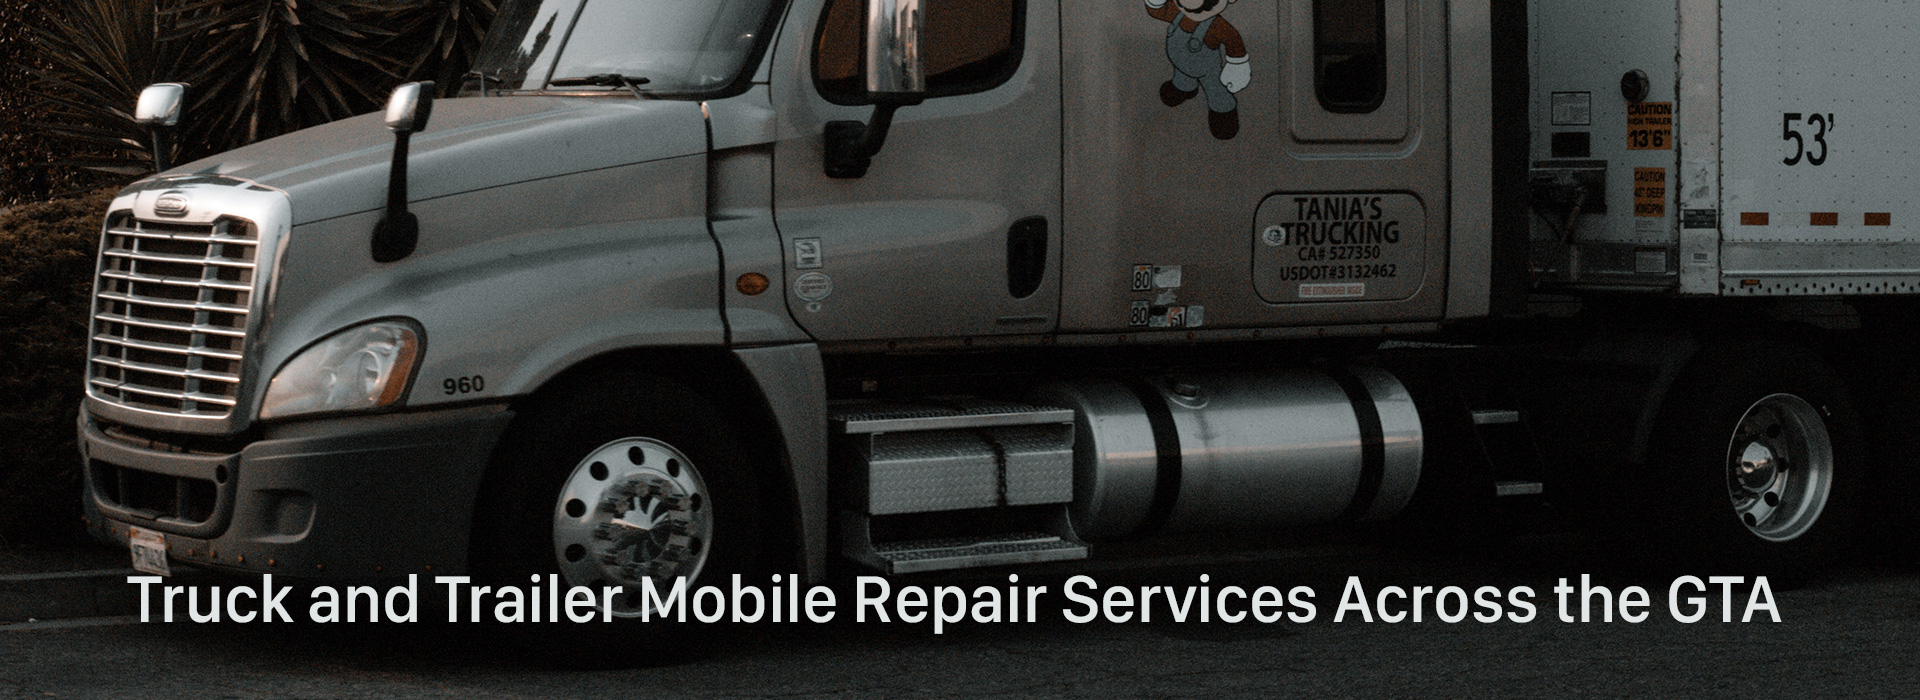 Truck and Trailer Mobile Repair Services